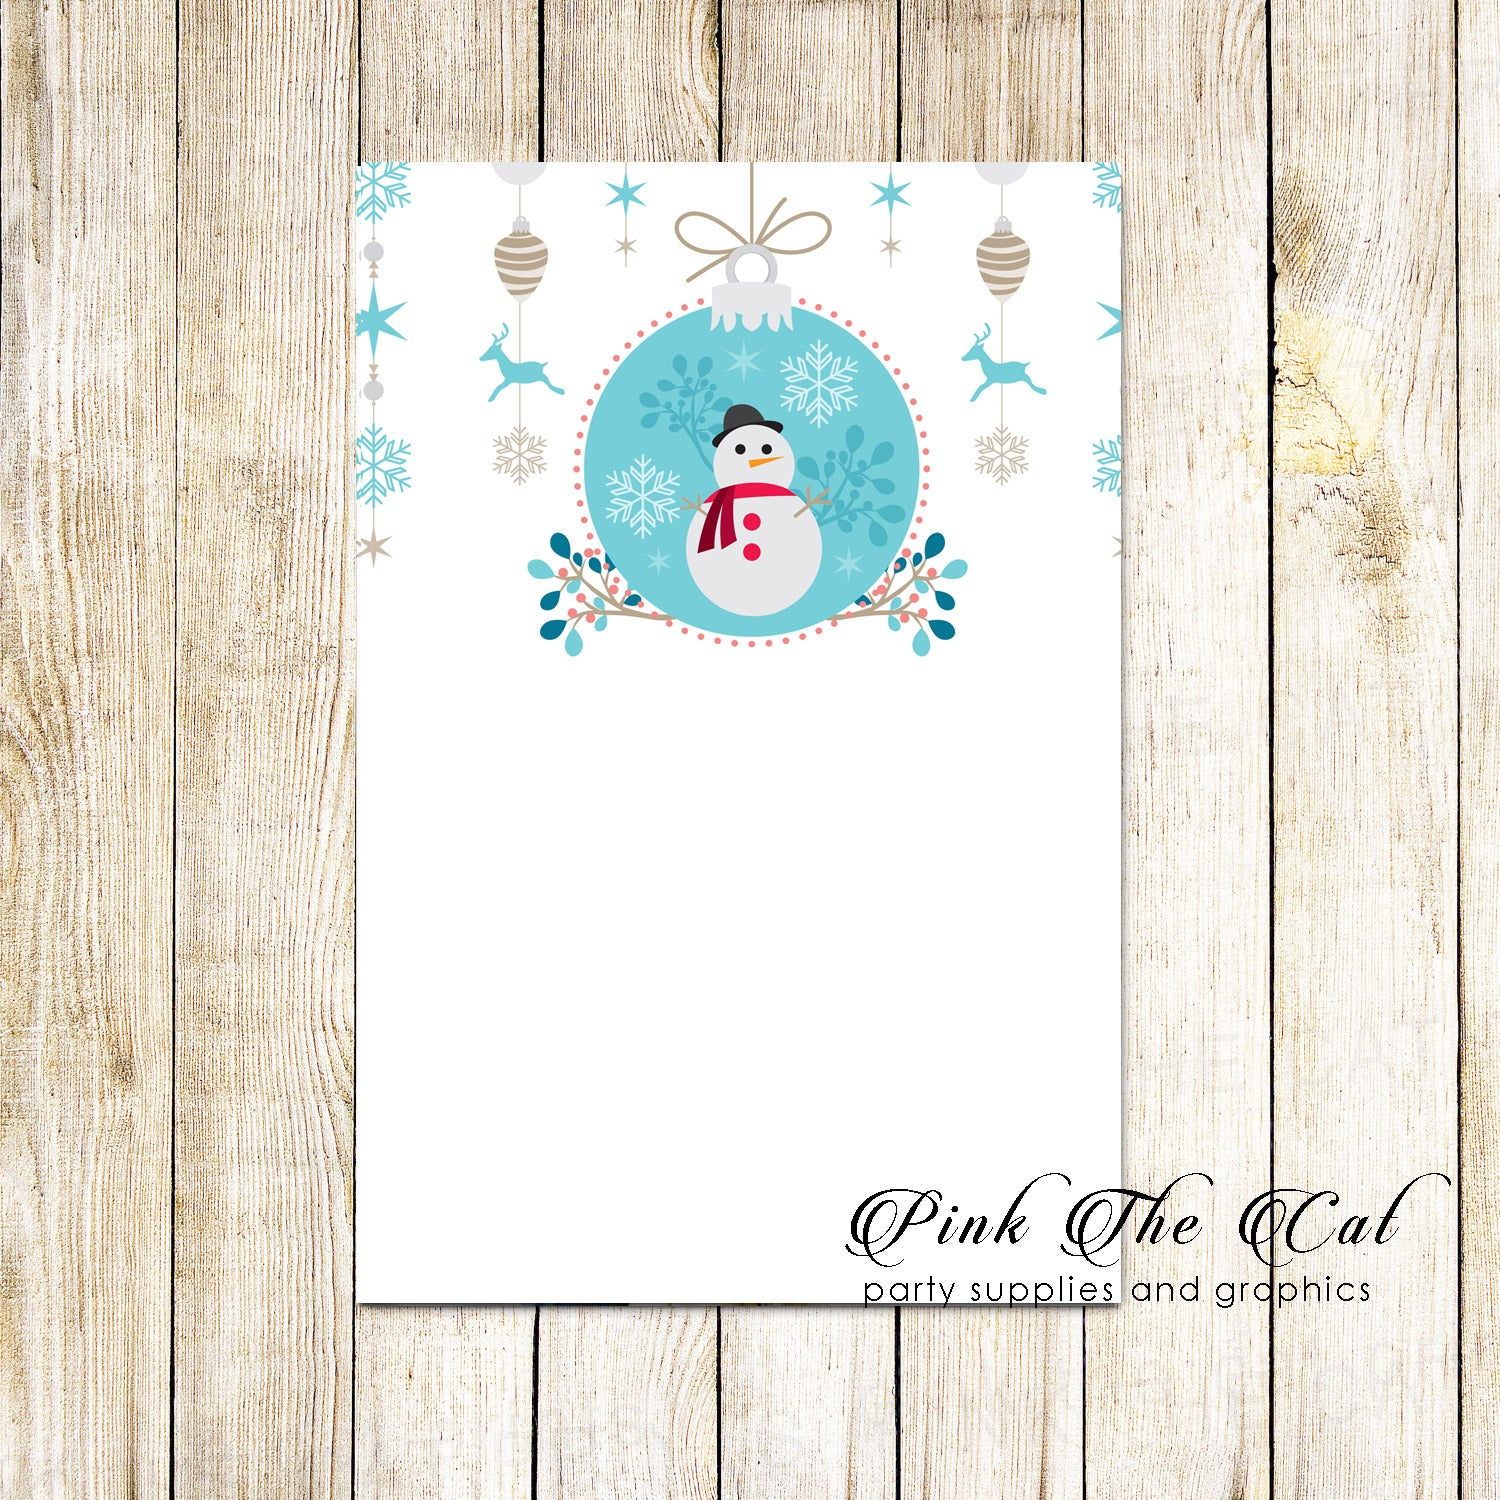 30 cards invitations greeting notes kids christmas snowman blank 30 cards invitations greeting notes kids christmas snowman m4hsunfo